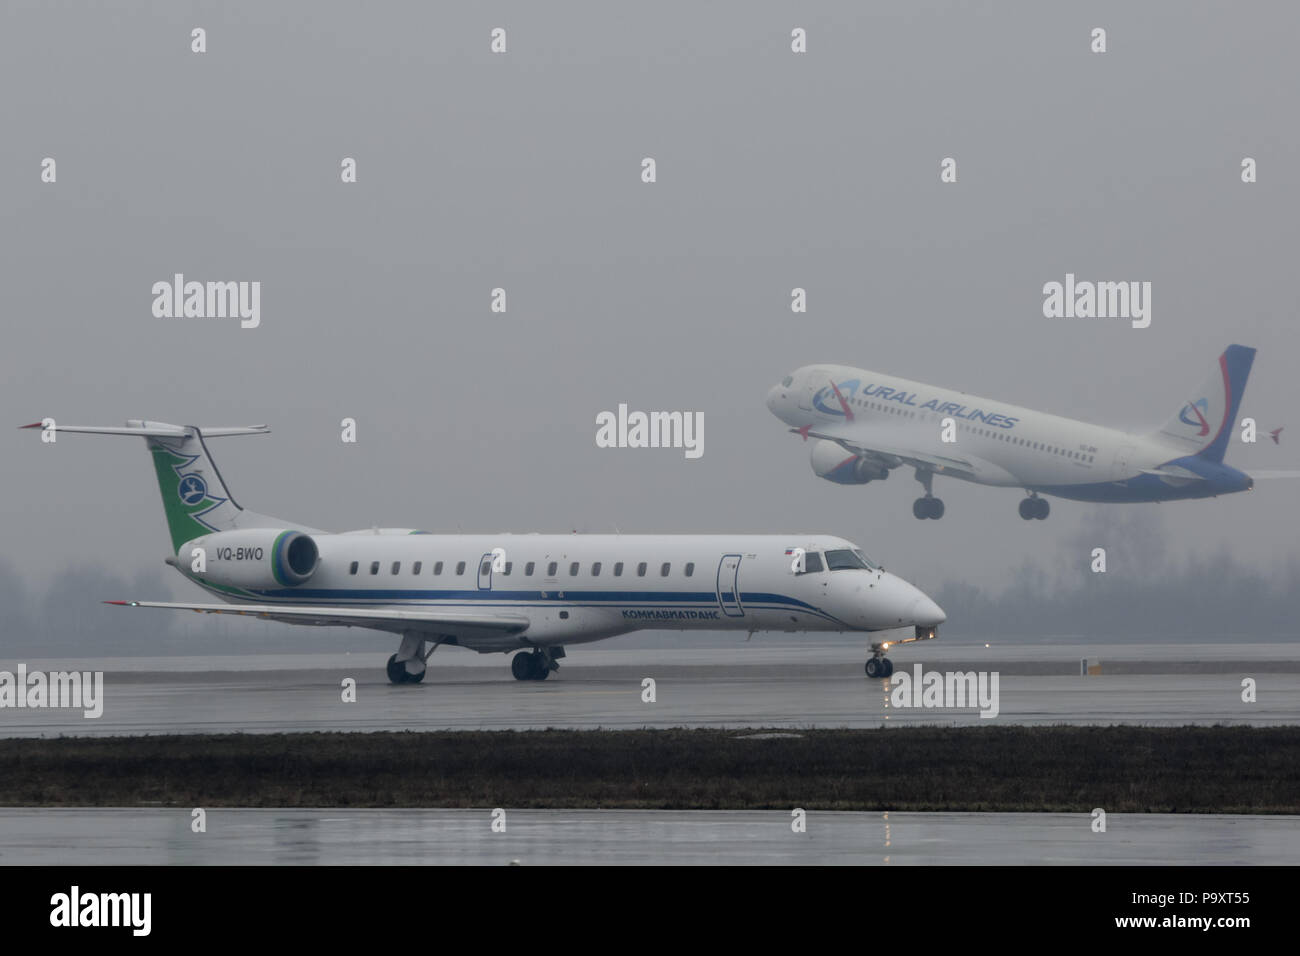 The Embraer-145 regional jet airplane of Komiaviatrans and Airbus A320 of Ural Airlines taking off from Domodedovo Airport, Moscow Region, Russia - Stock Image